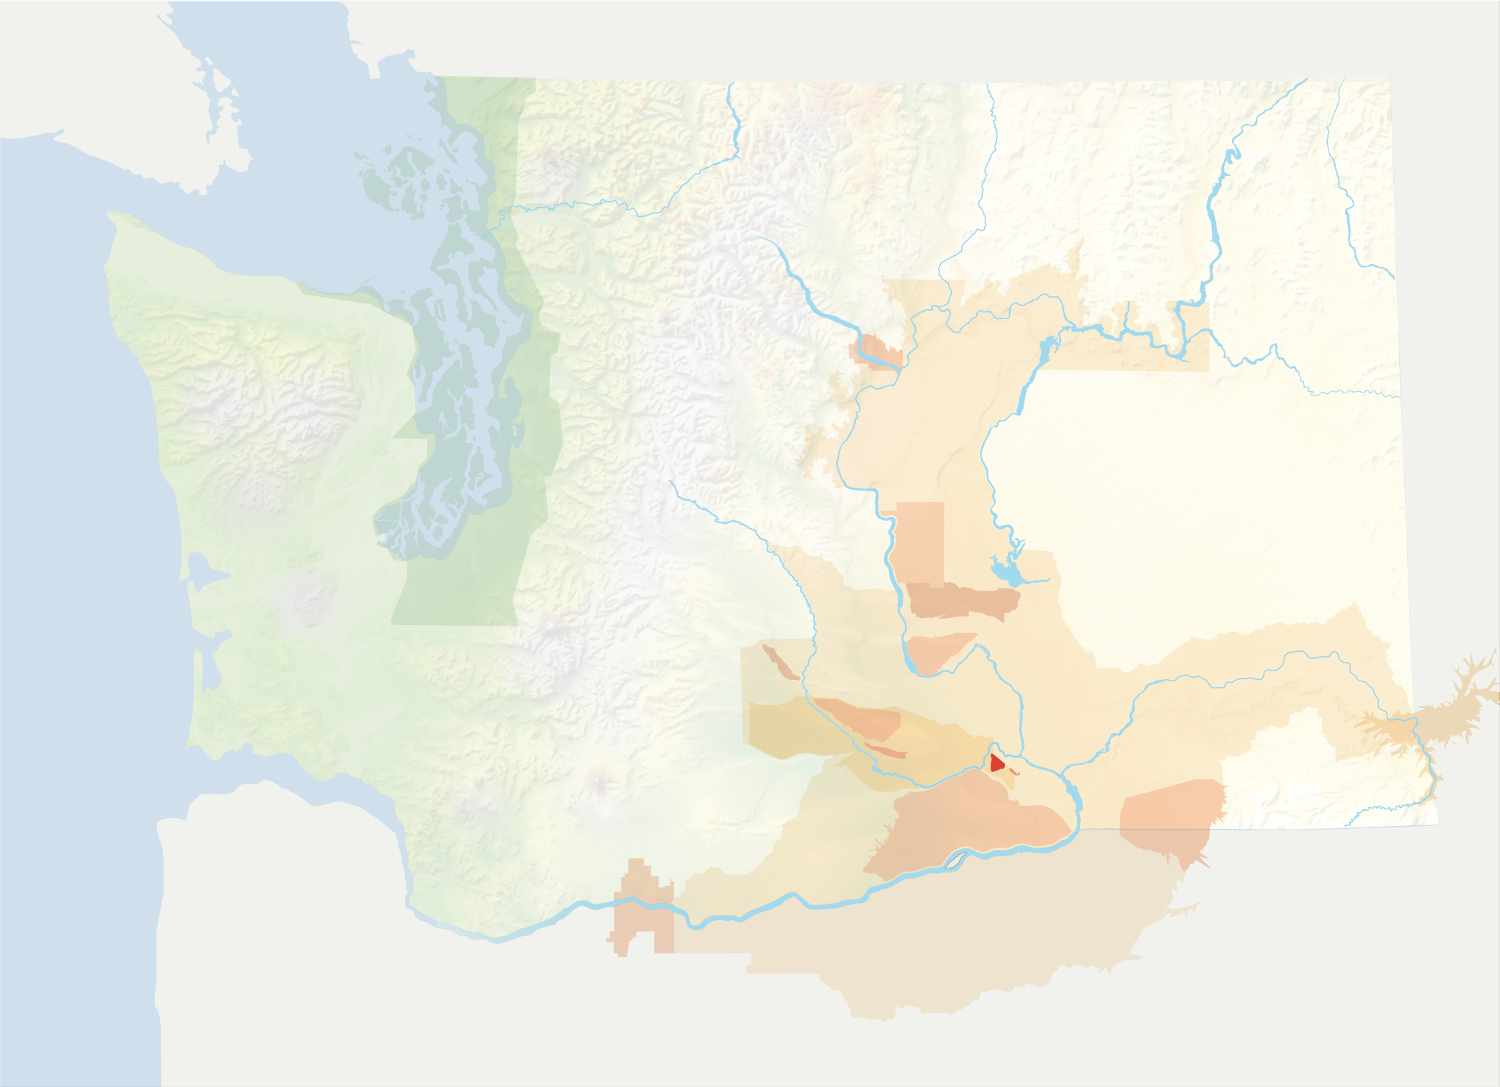 Map of Washington with the Red Mountain AVA in red, surrounded by the rest of the AVAs in muted greens and oranges.